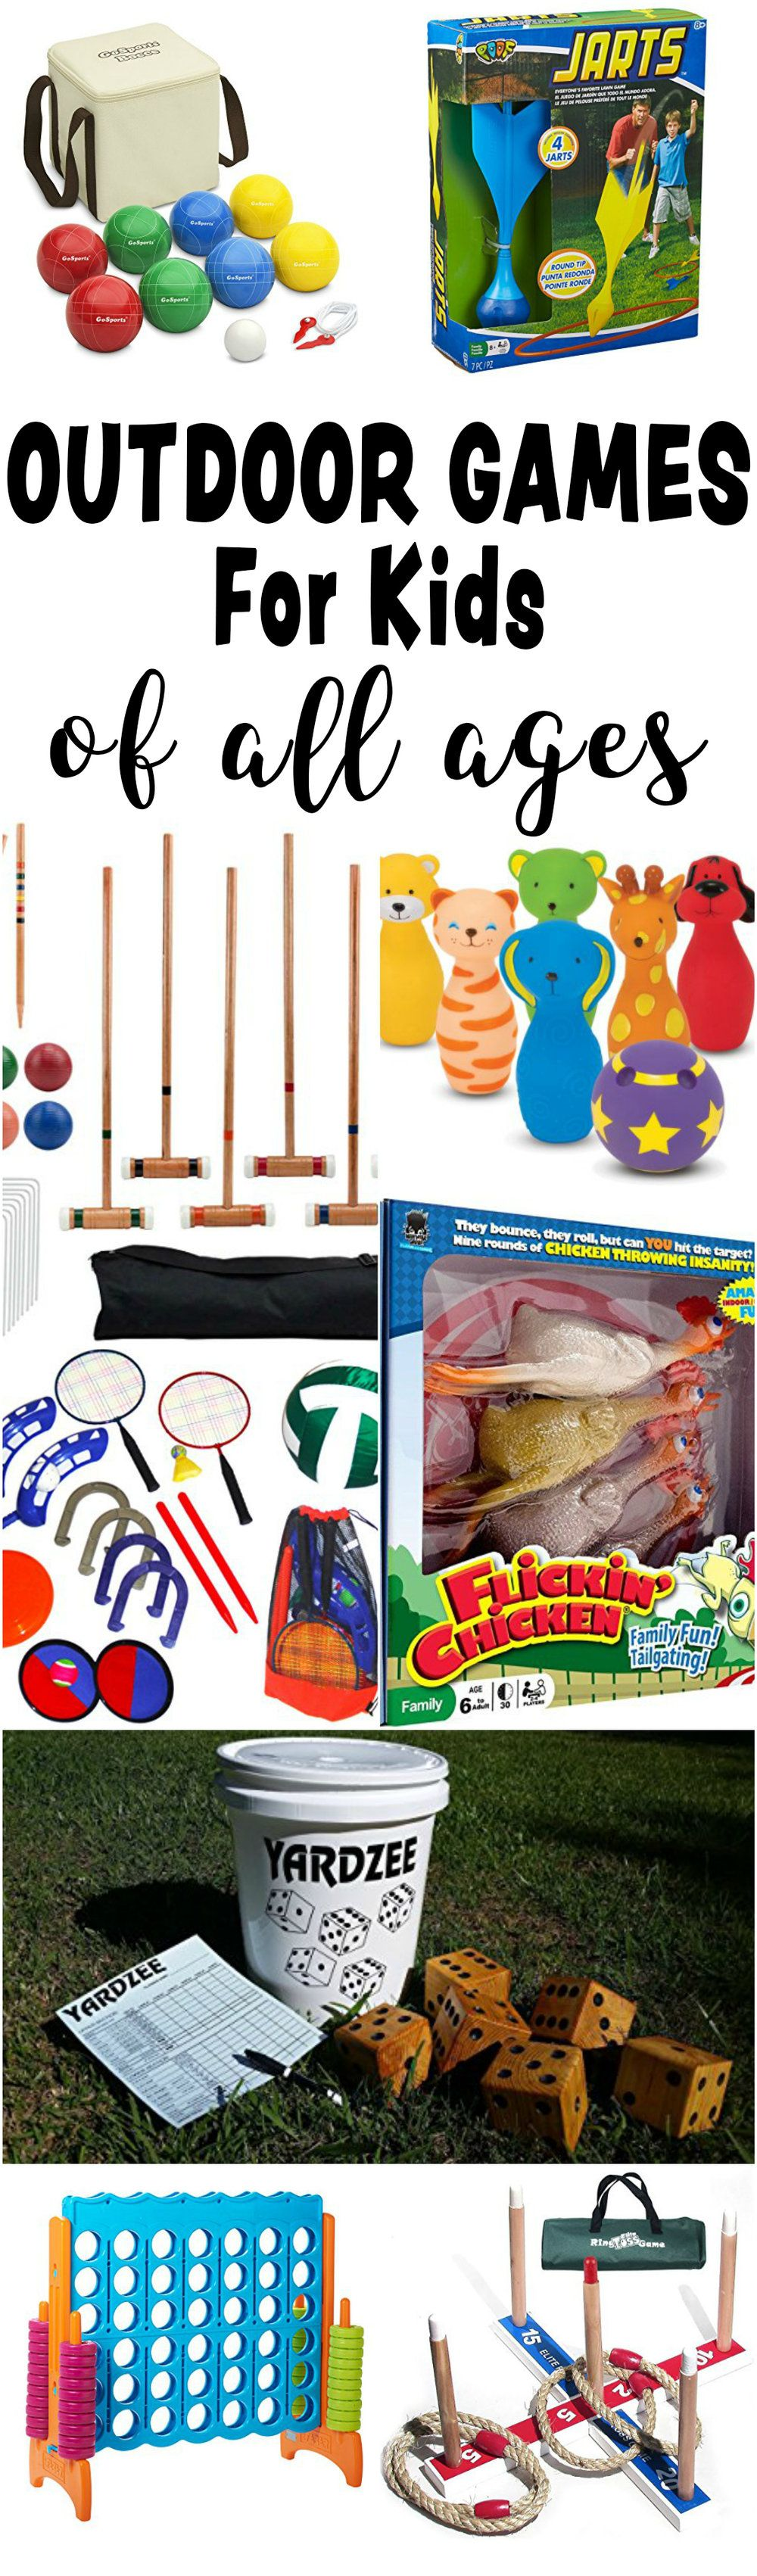 Fun Outdoor Games For Kids All Ages